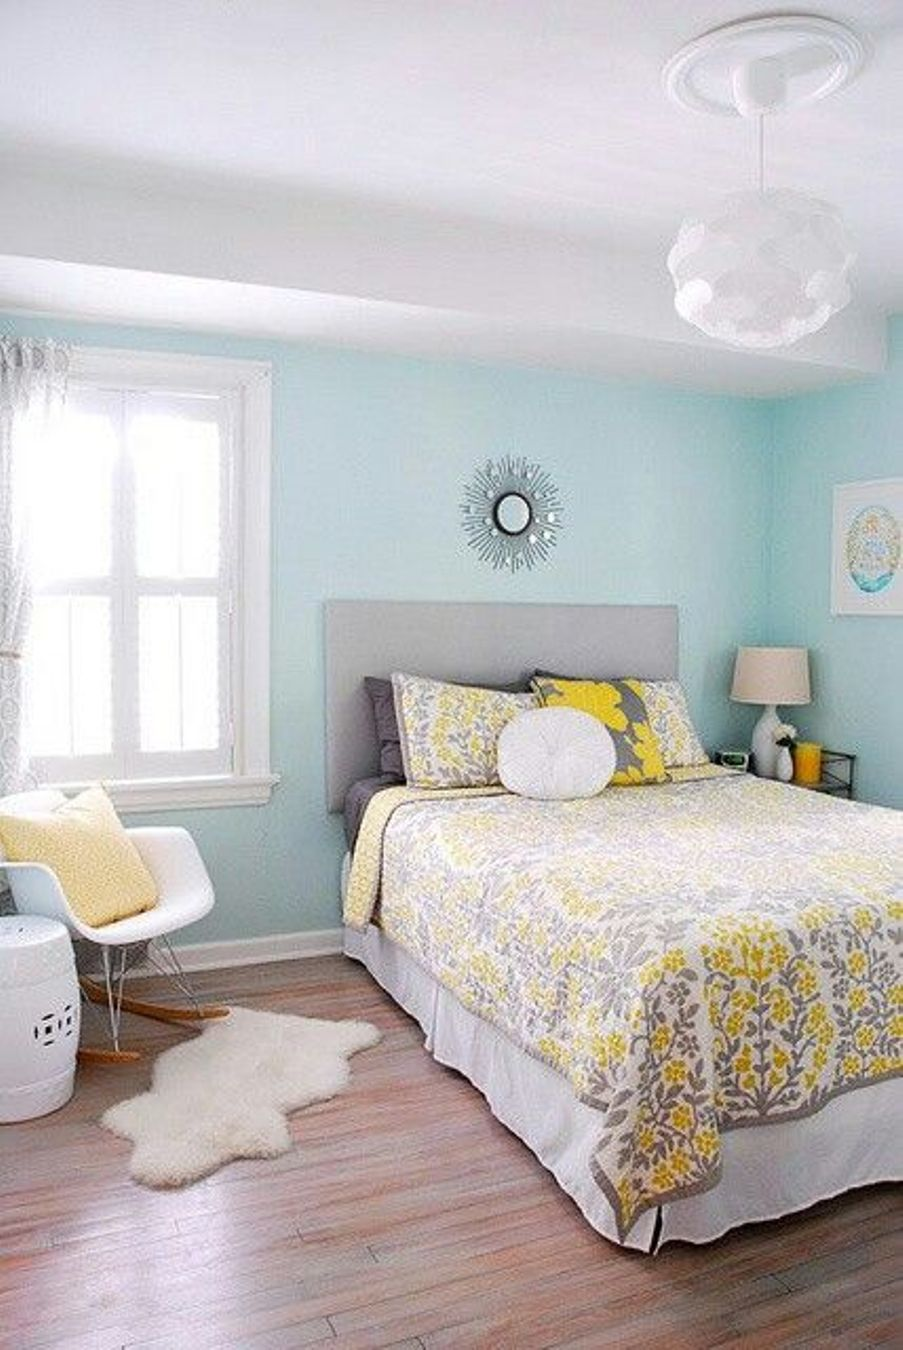 Best paint colors for small room some tips homesfeed for Paint color ideas for bedroom